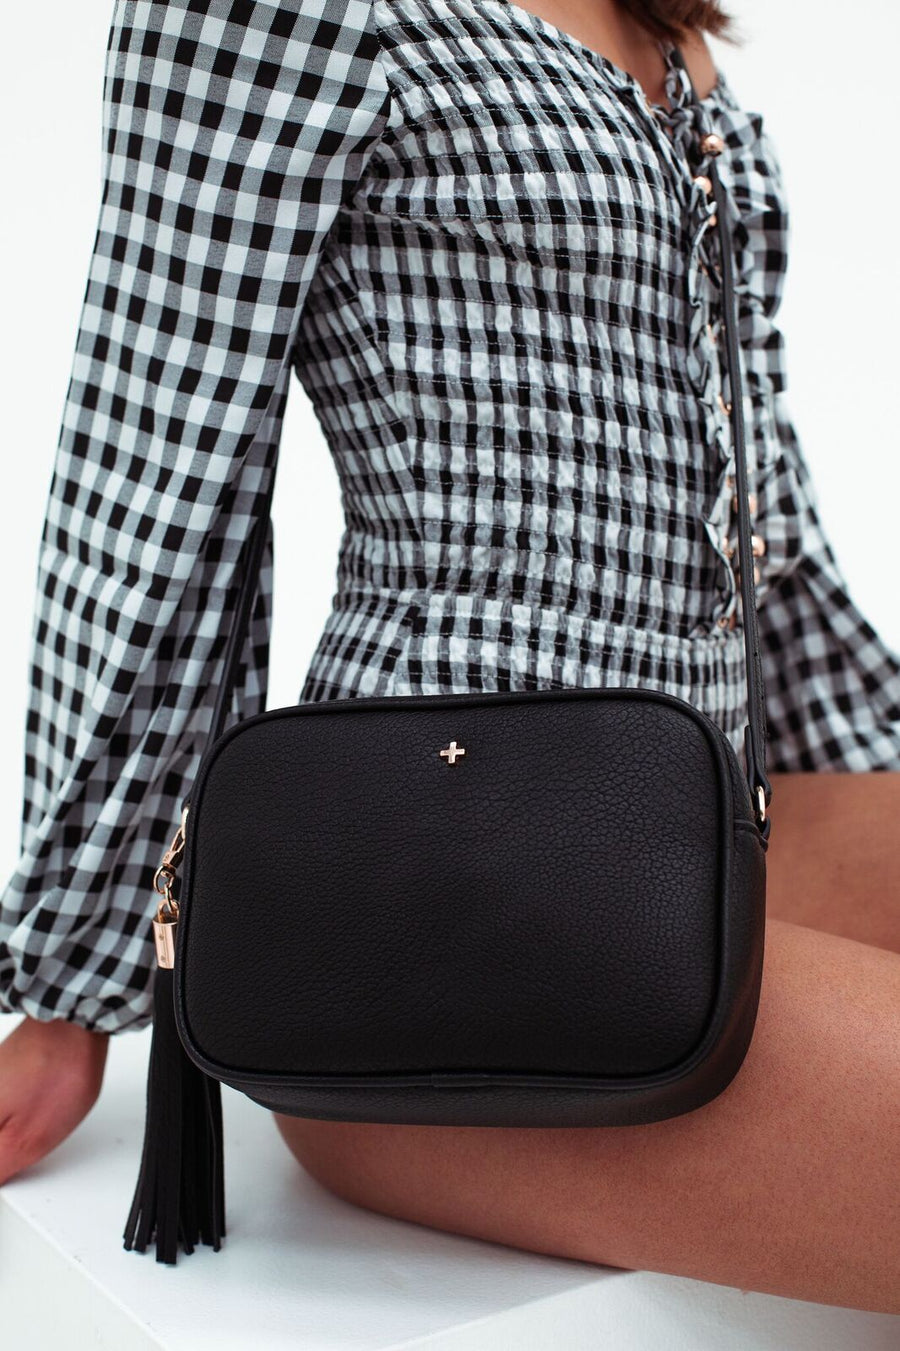 Gracie Bag in Black - HER Empire Fashion Boutique Terrigal & Online